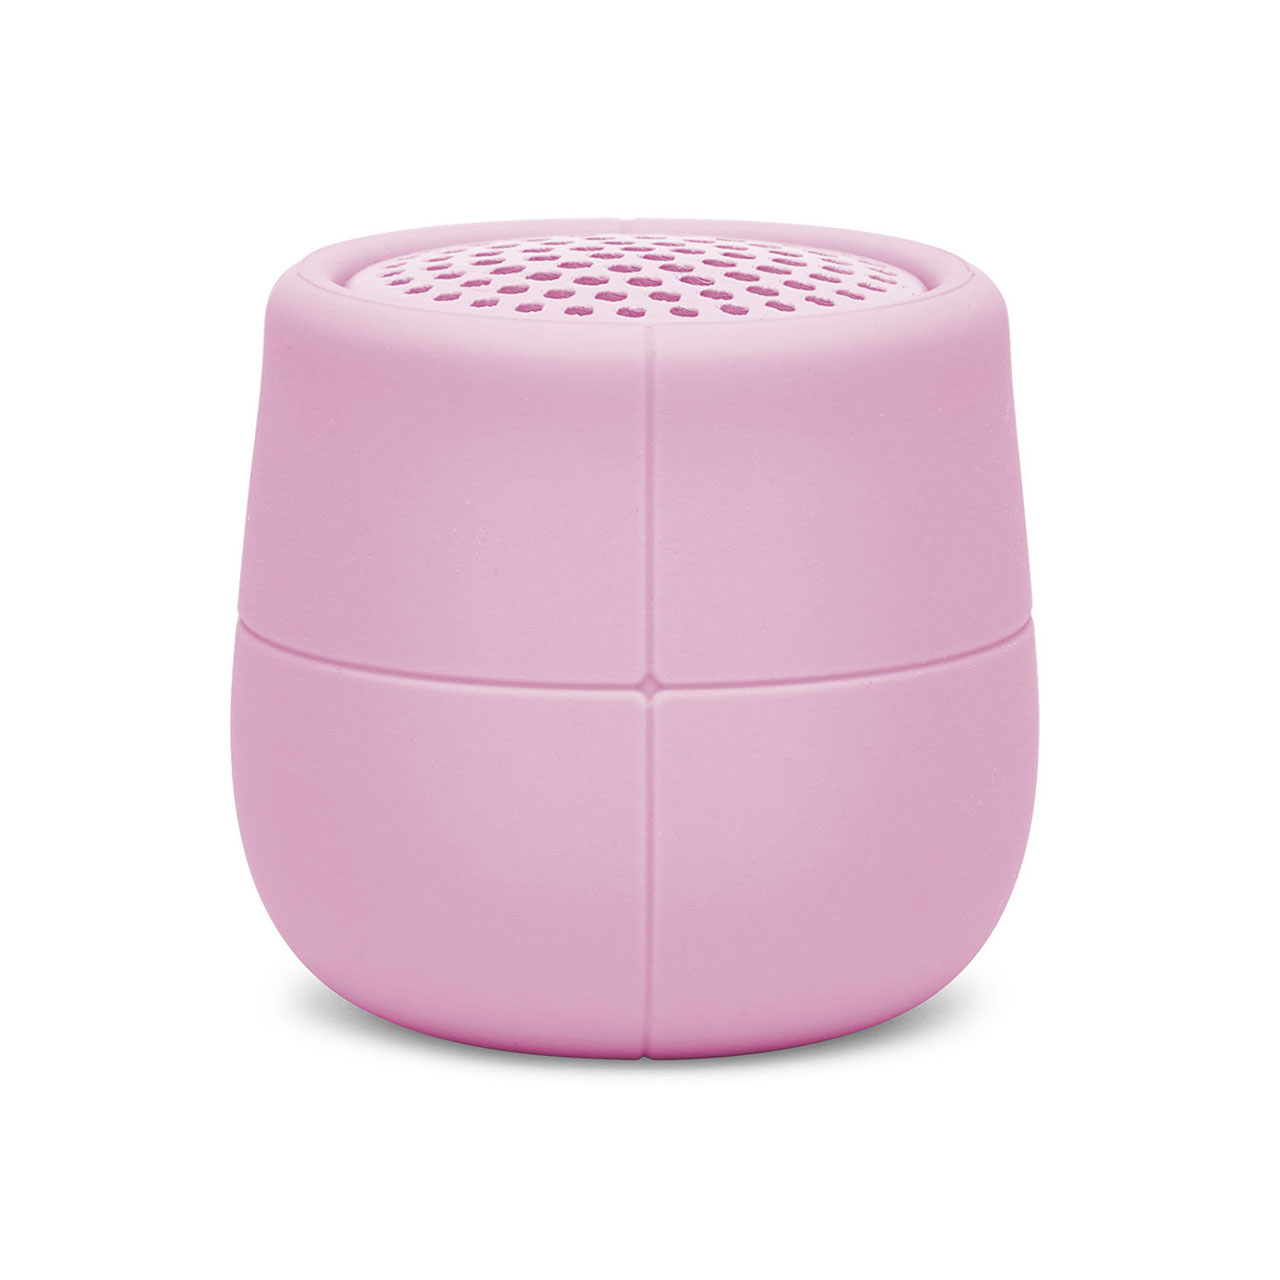 LEXON Mino X Speaker LA120P9 Pink | The Design Gift Shop